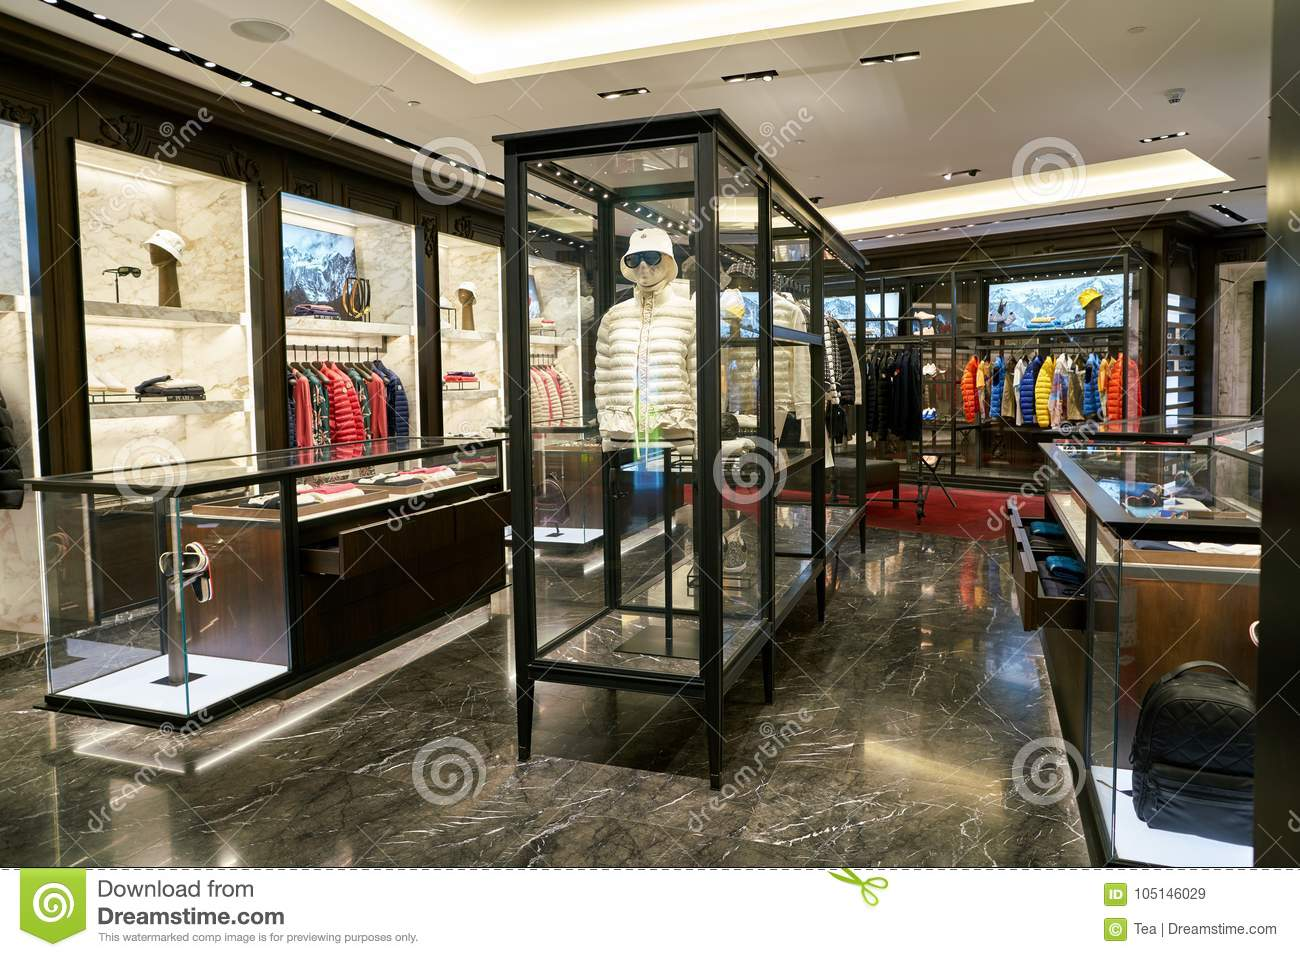 6a5fb7122 Moncler editorial stock image. Image of colour, commerce - 105146029